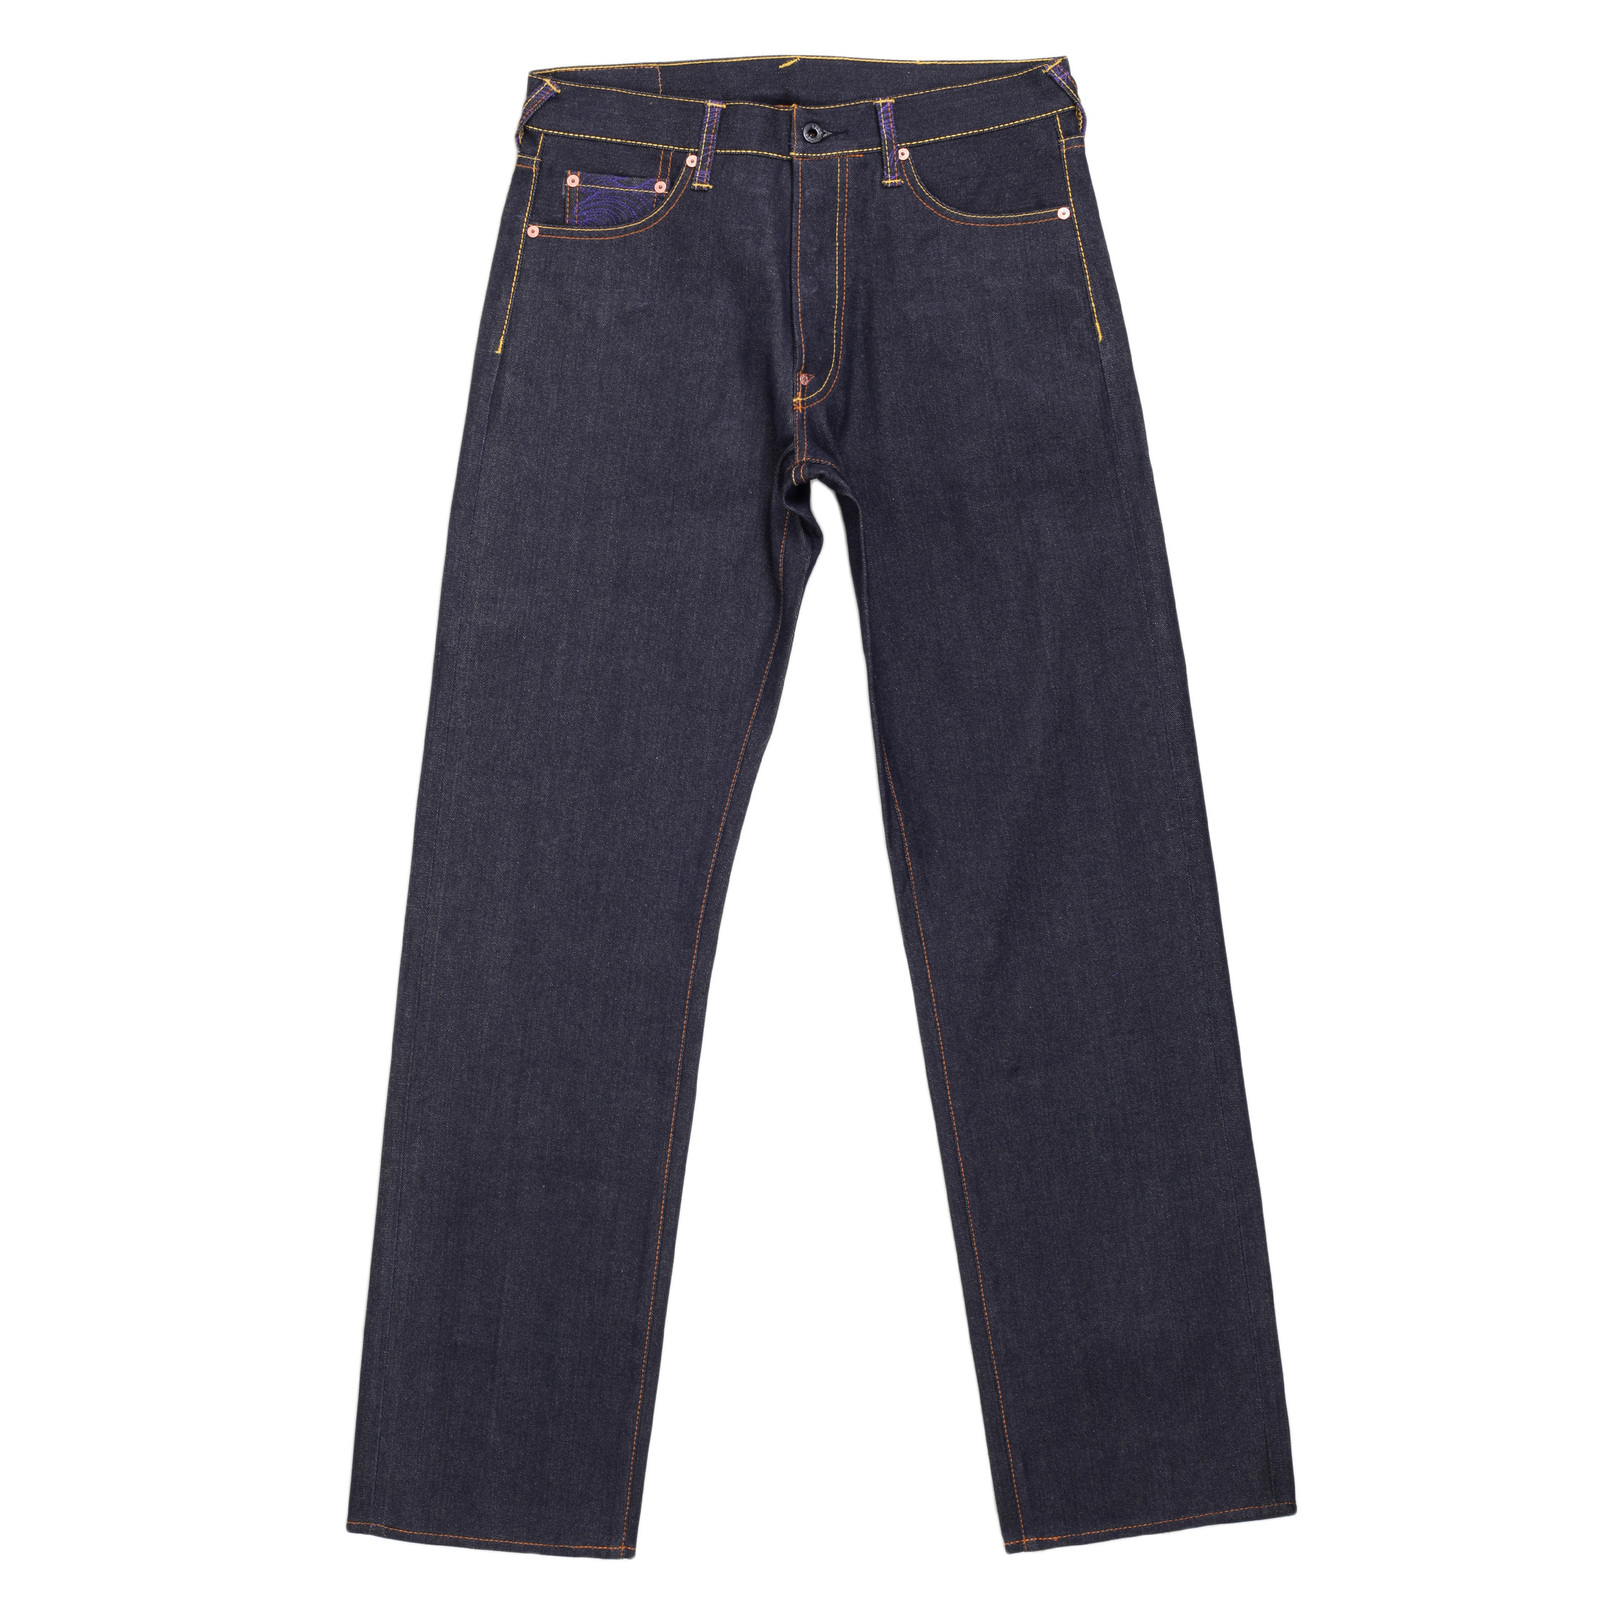 Mens designer jeans with lucky cat embroidery from rmc